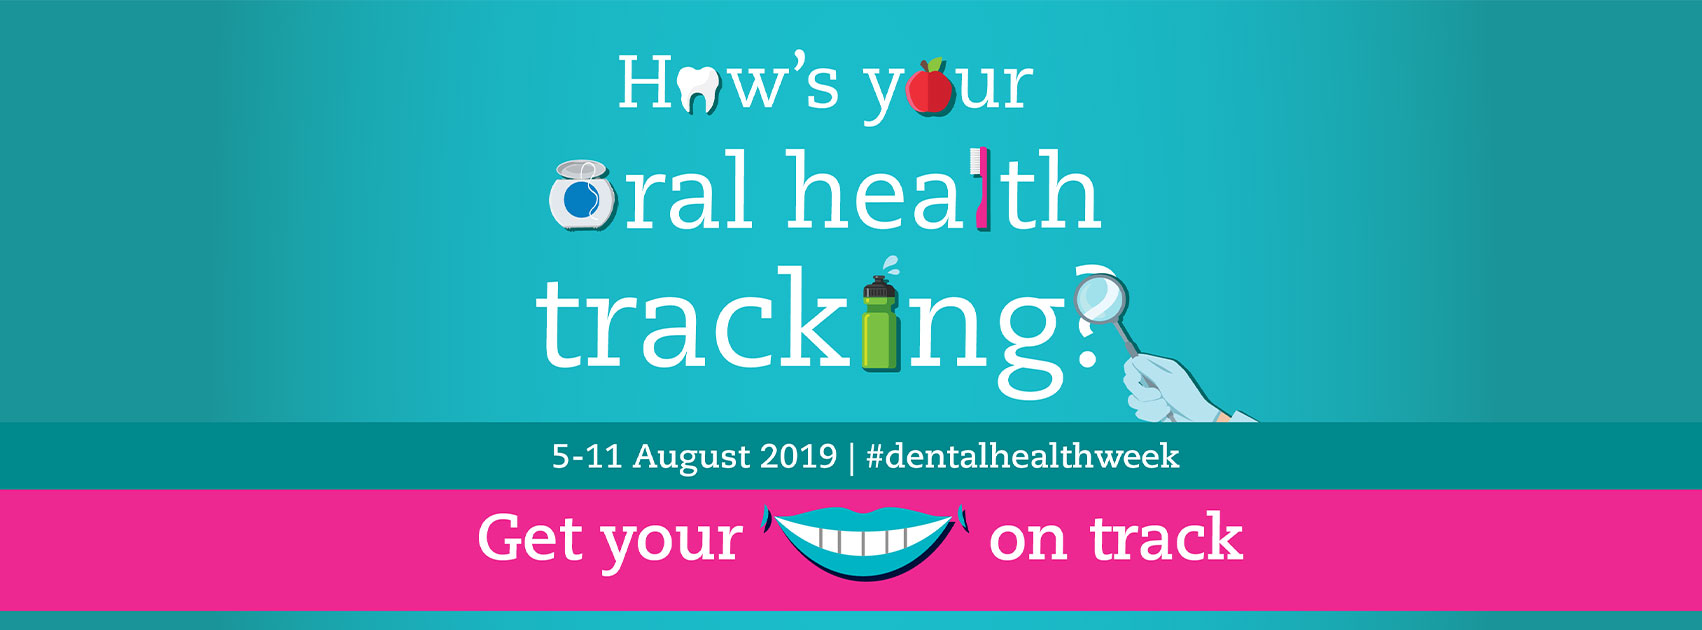 Are you on track with your oral health?